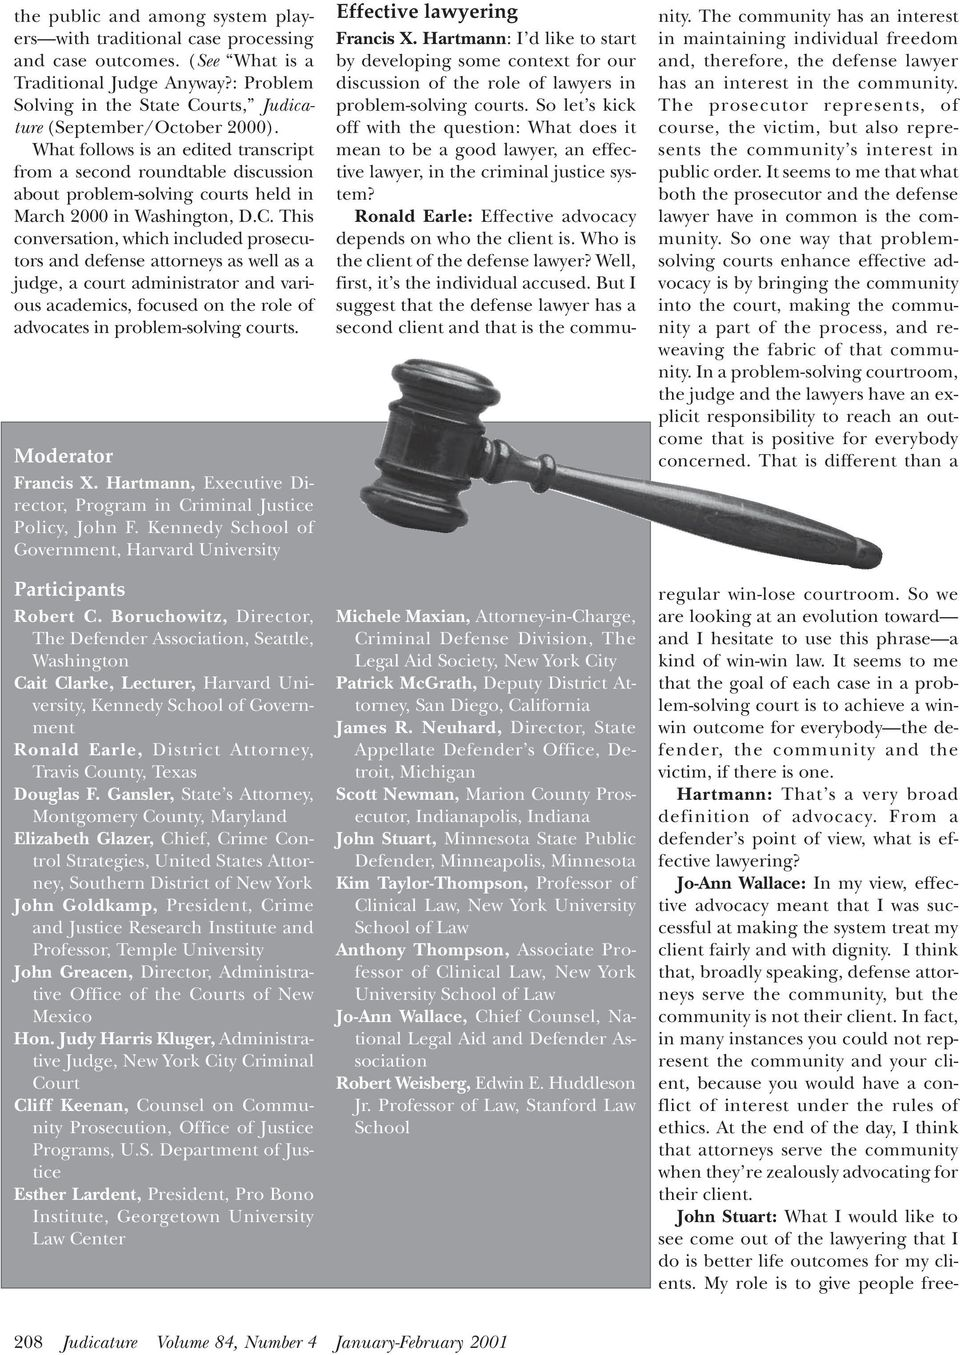 What follows is an edited transcript from a second roundtable discussion about problem-solving courts held in March 2000 in Washington, D.C.